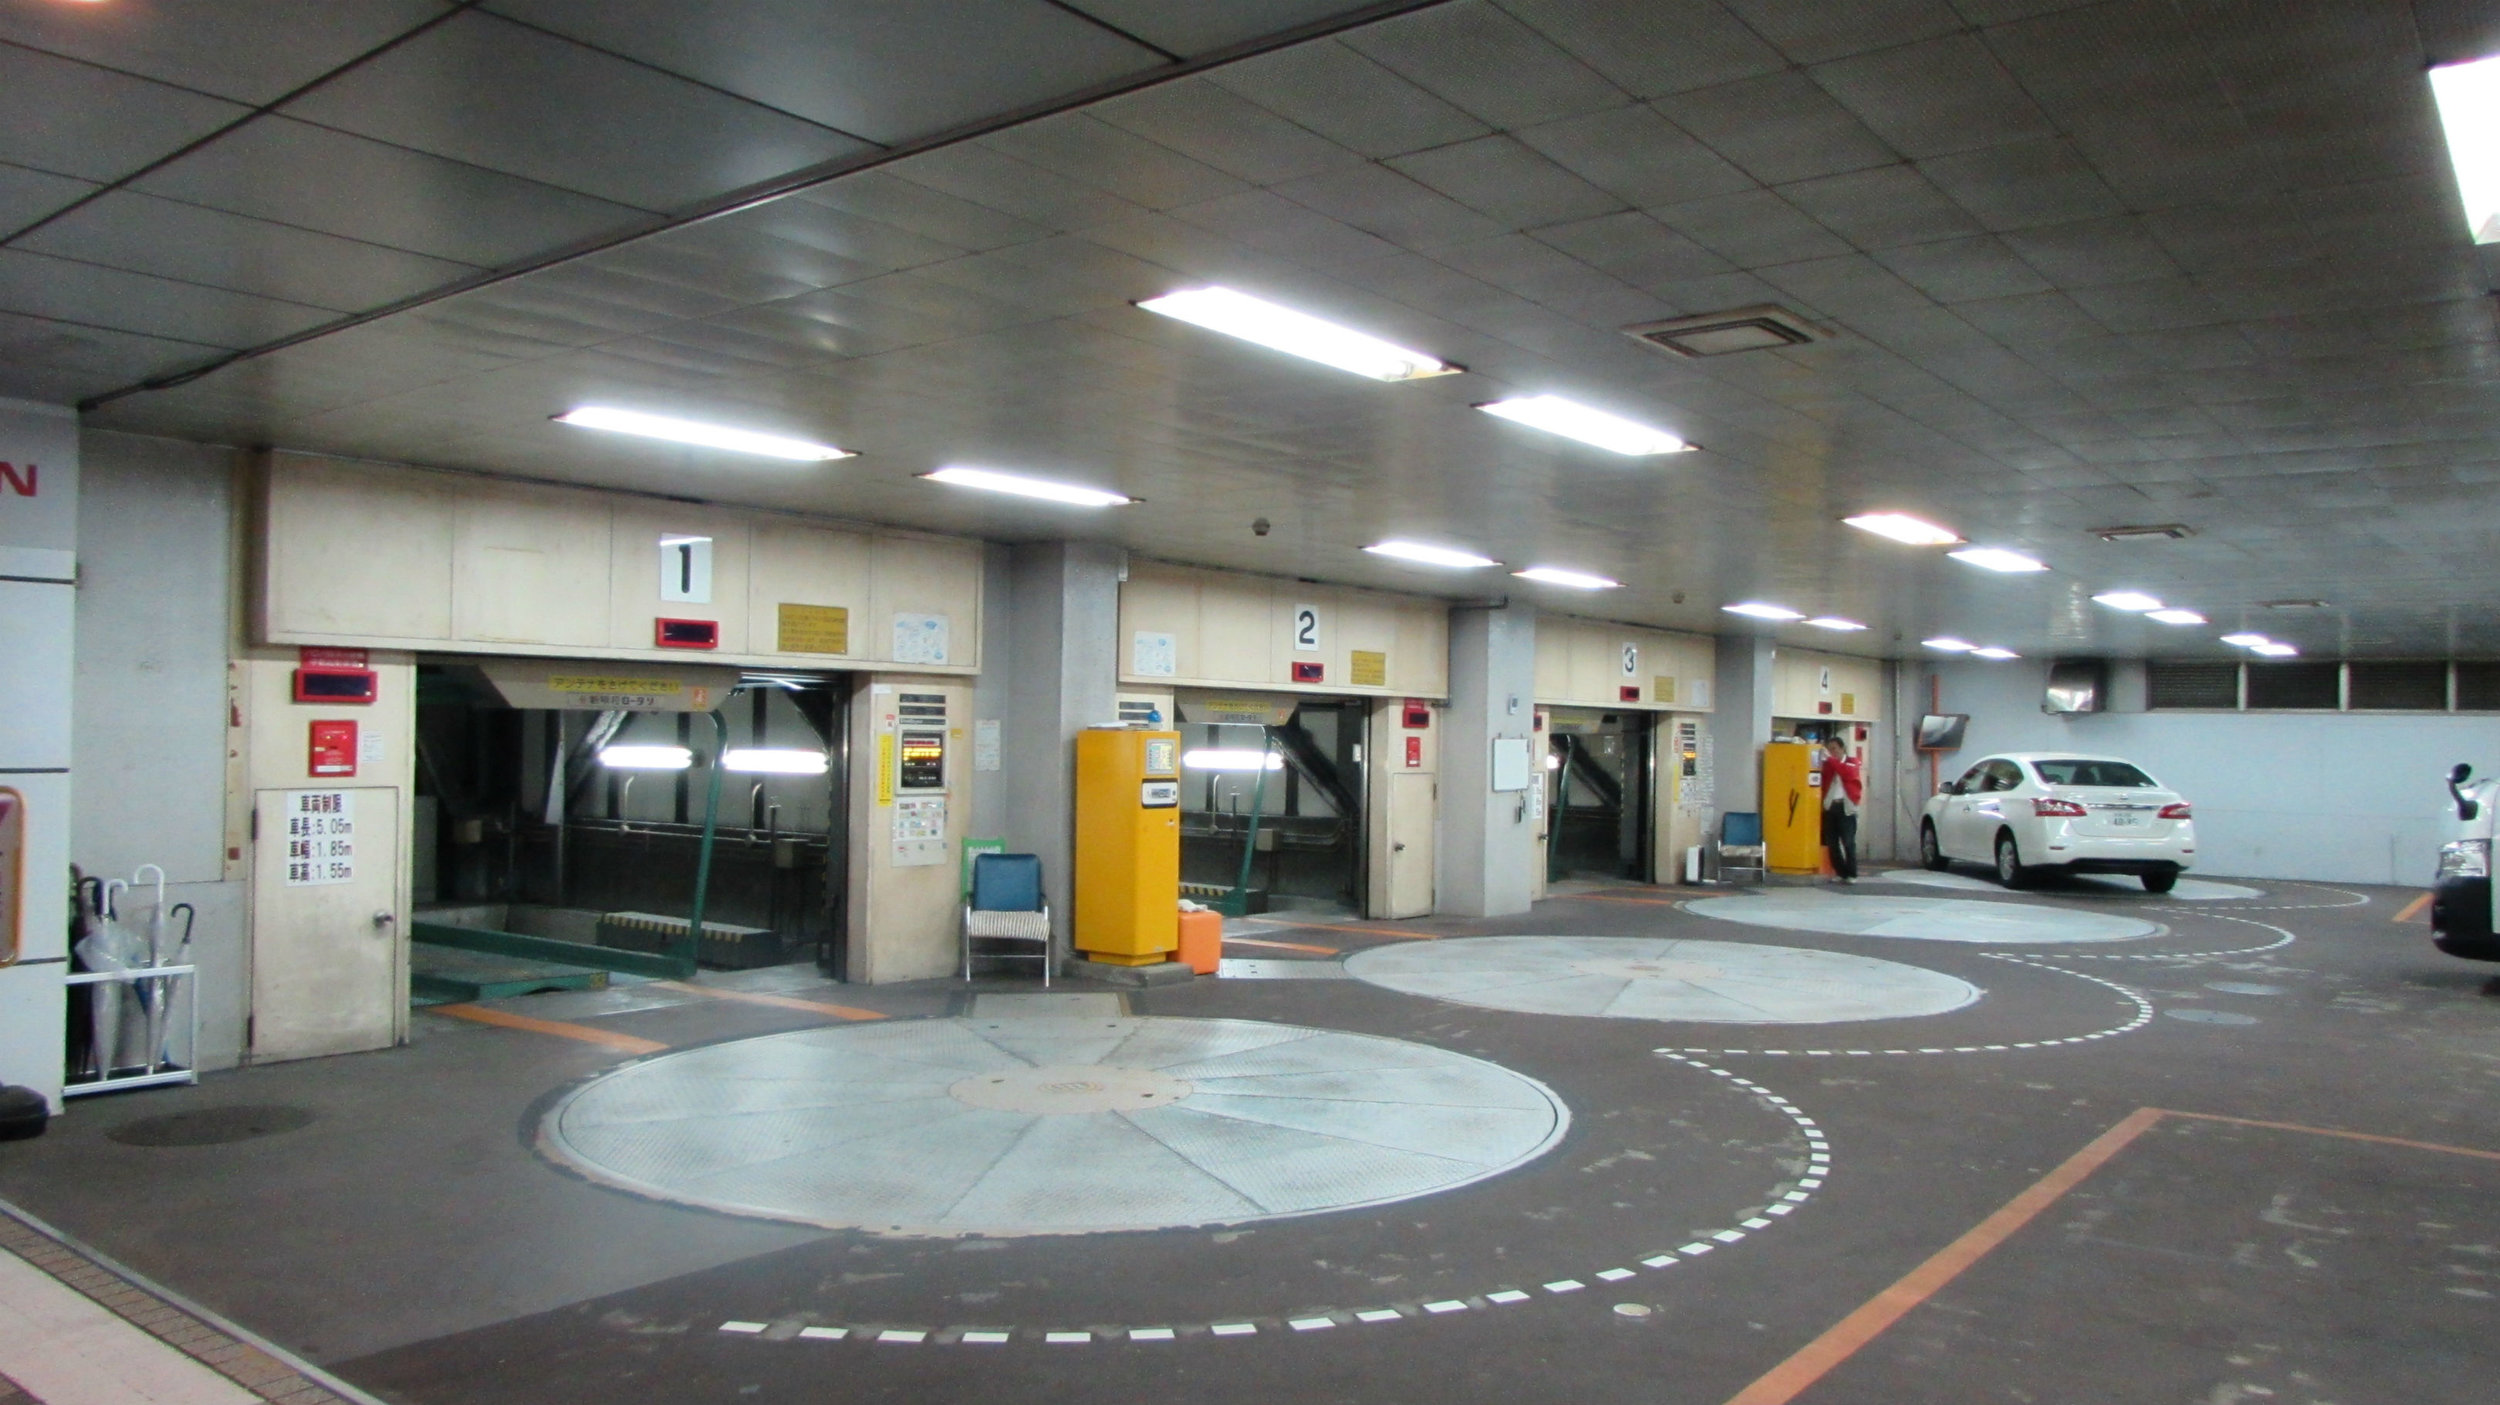 Revolving turning platforms and elevators to drive cars into a parking house